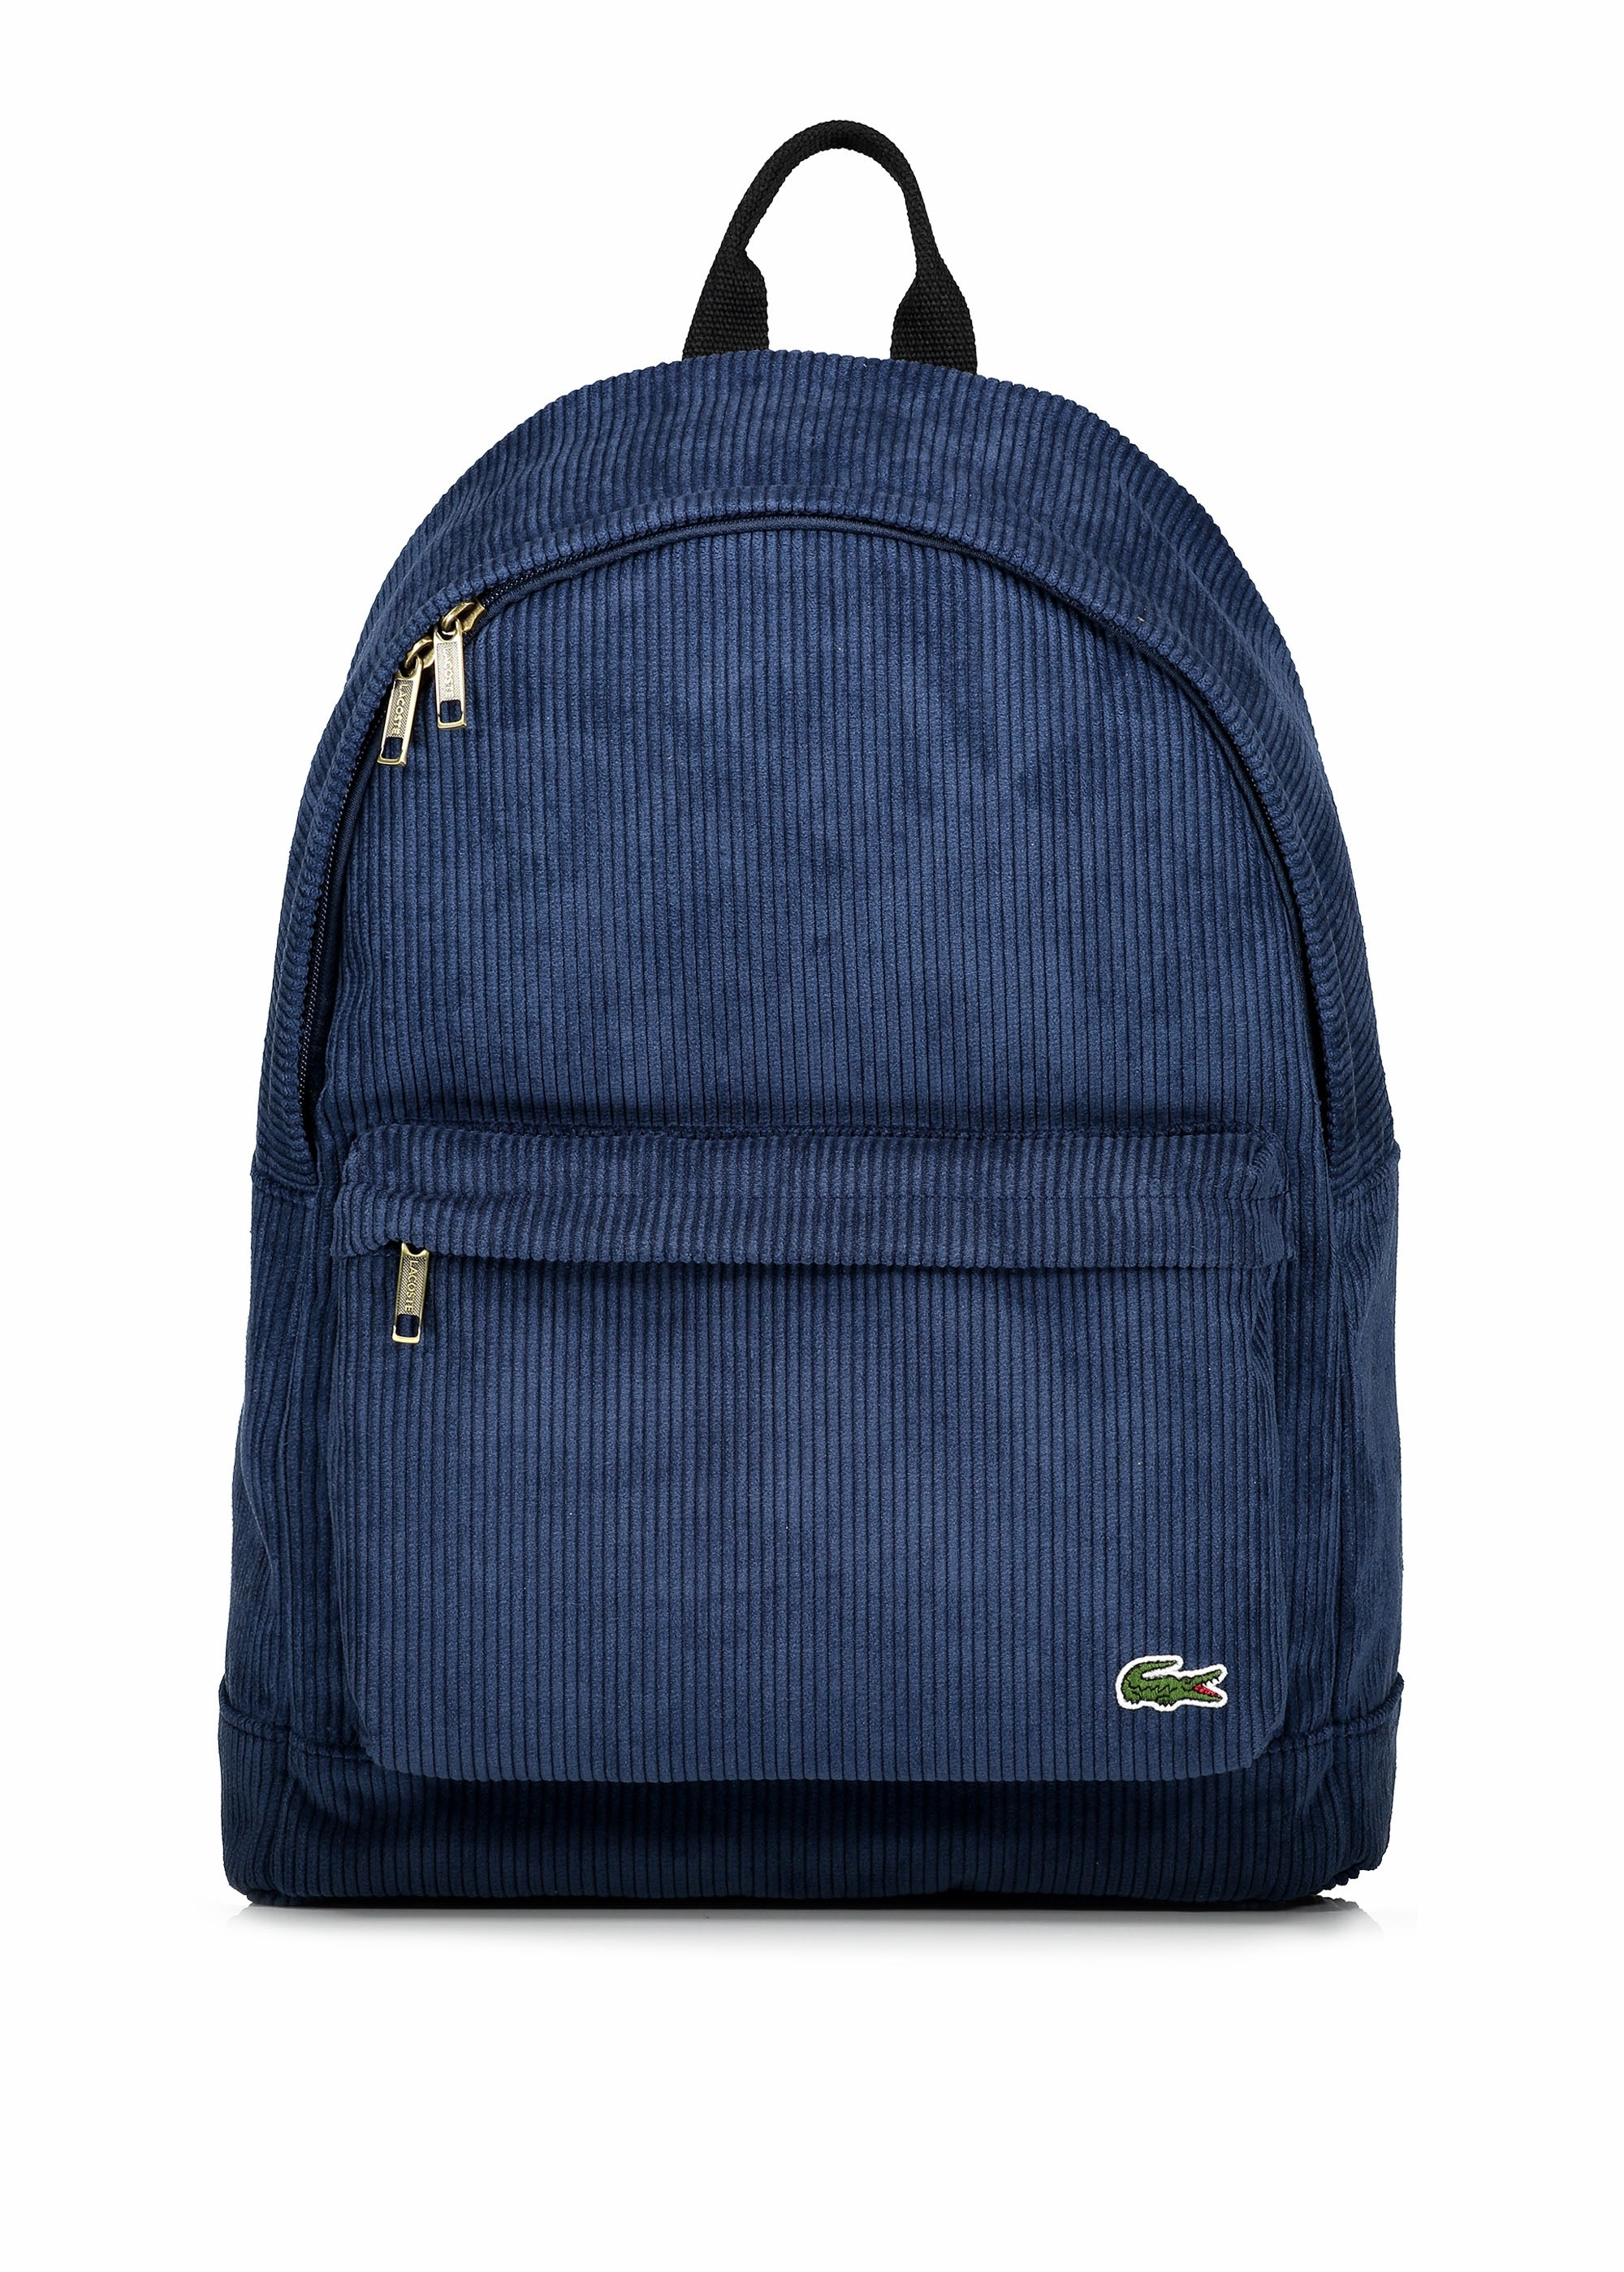 293353b3962 Lacoste Corduroy Backpack - Peacoat - Triads Mens from Triads UK